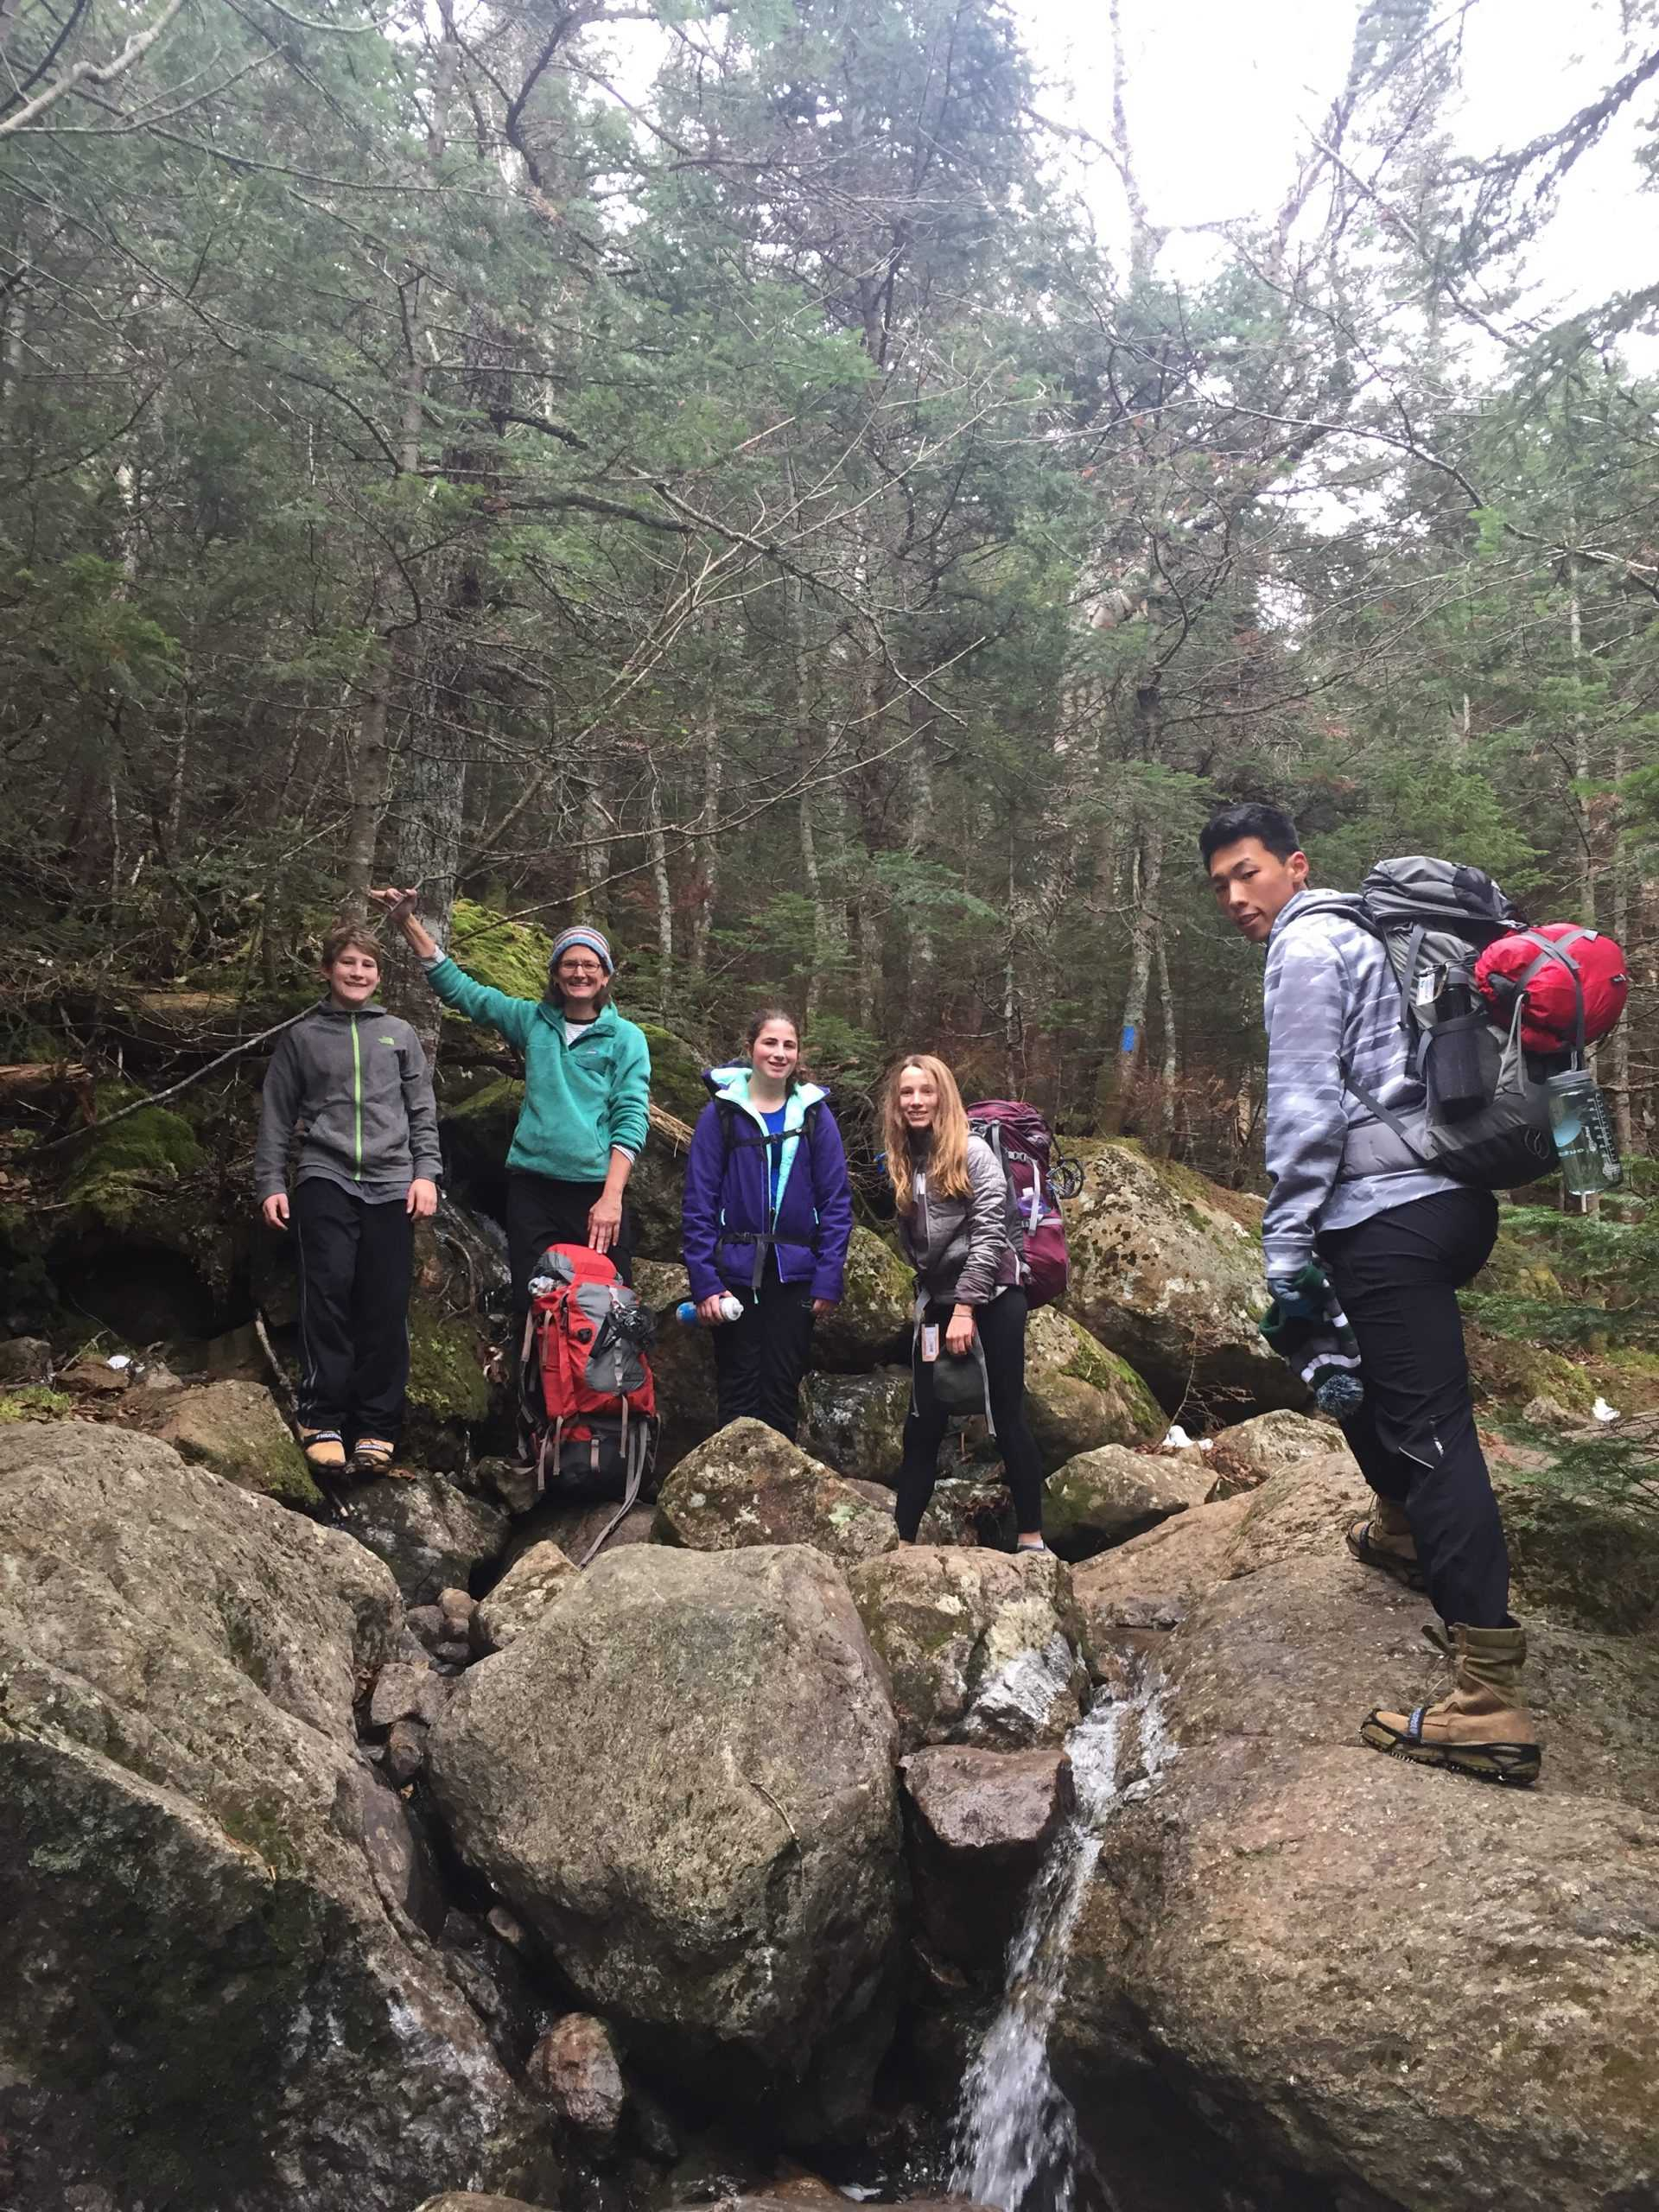 Students+enjoyed+hiking+in+the+White+Mountains.+